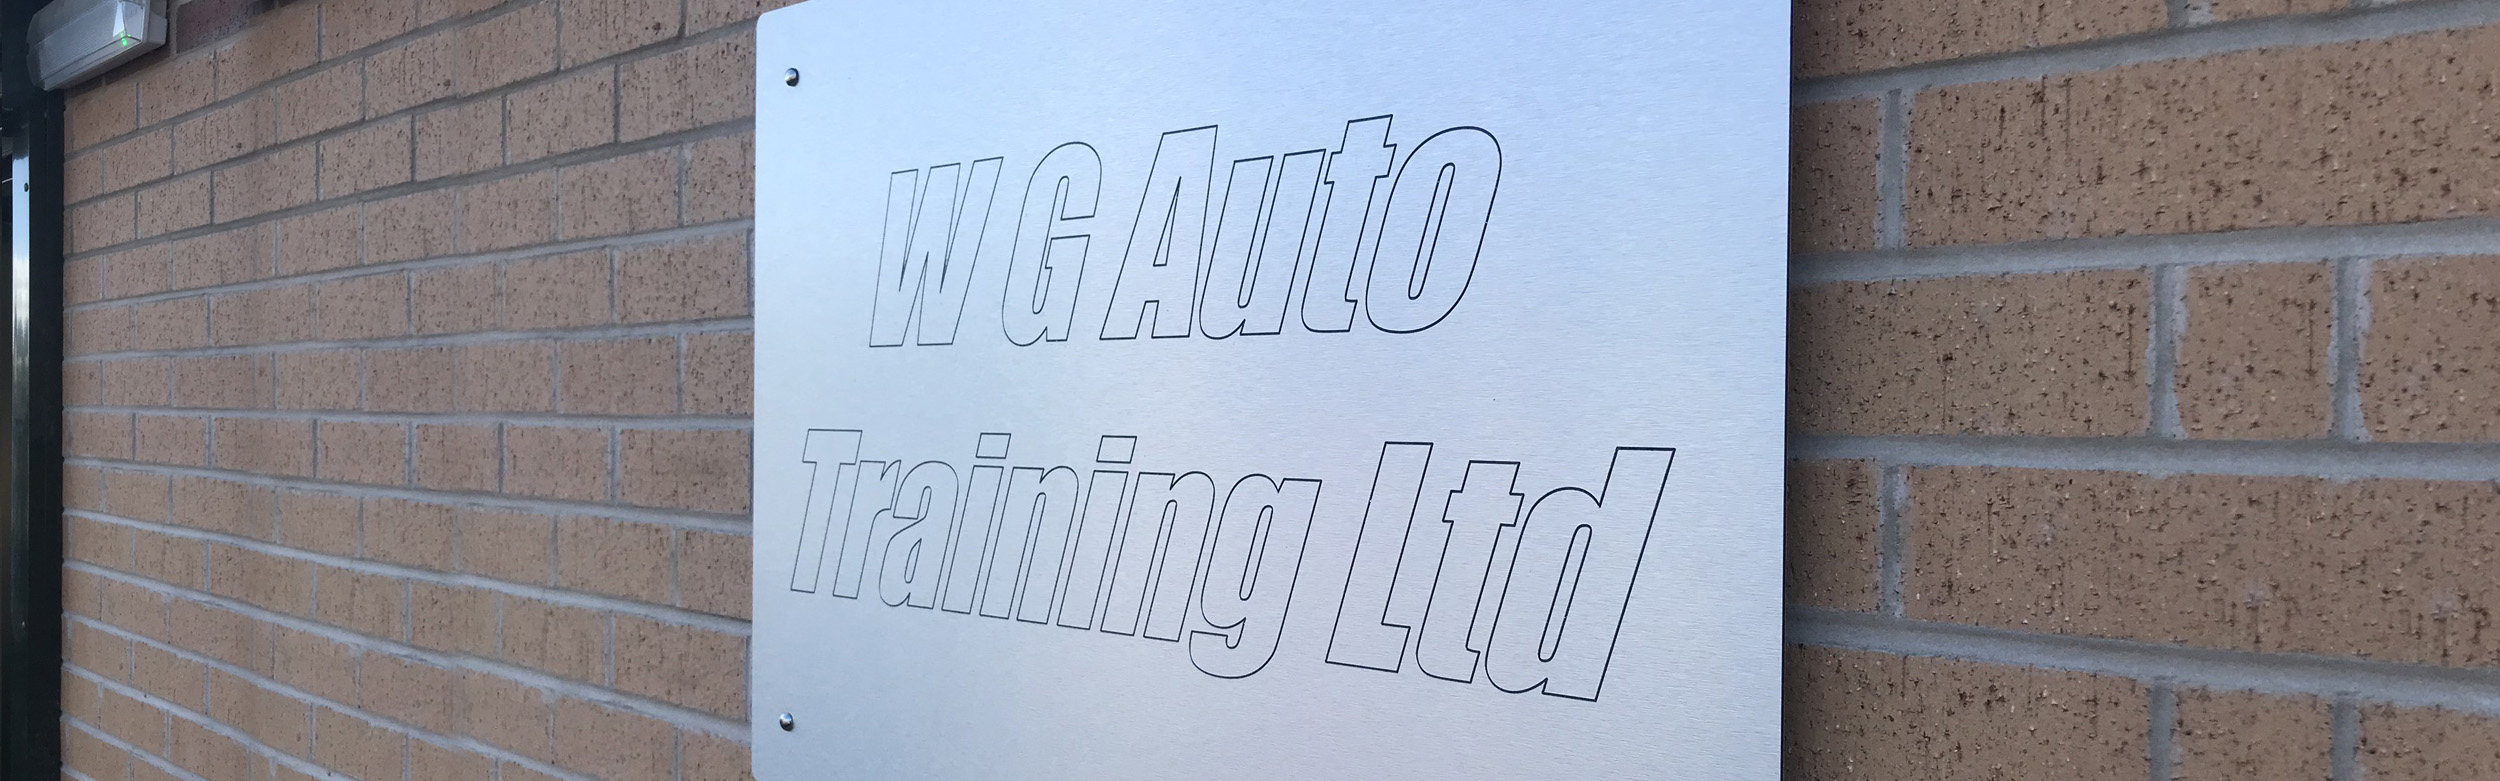 WG Auto Training Outside